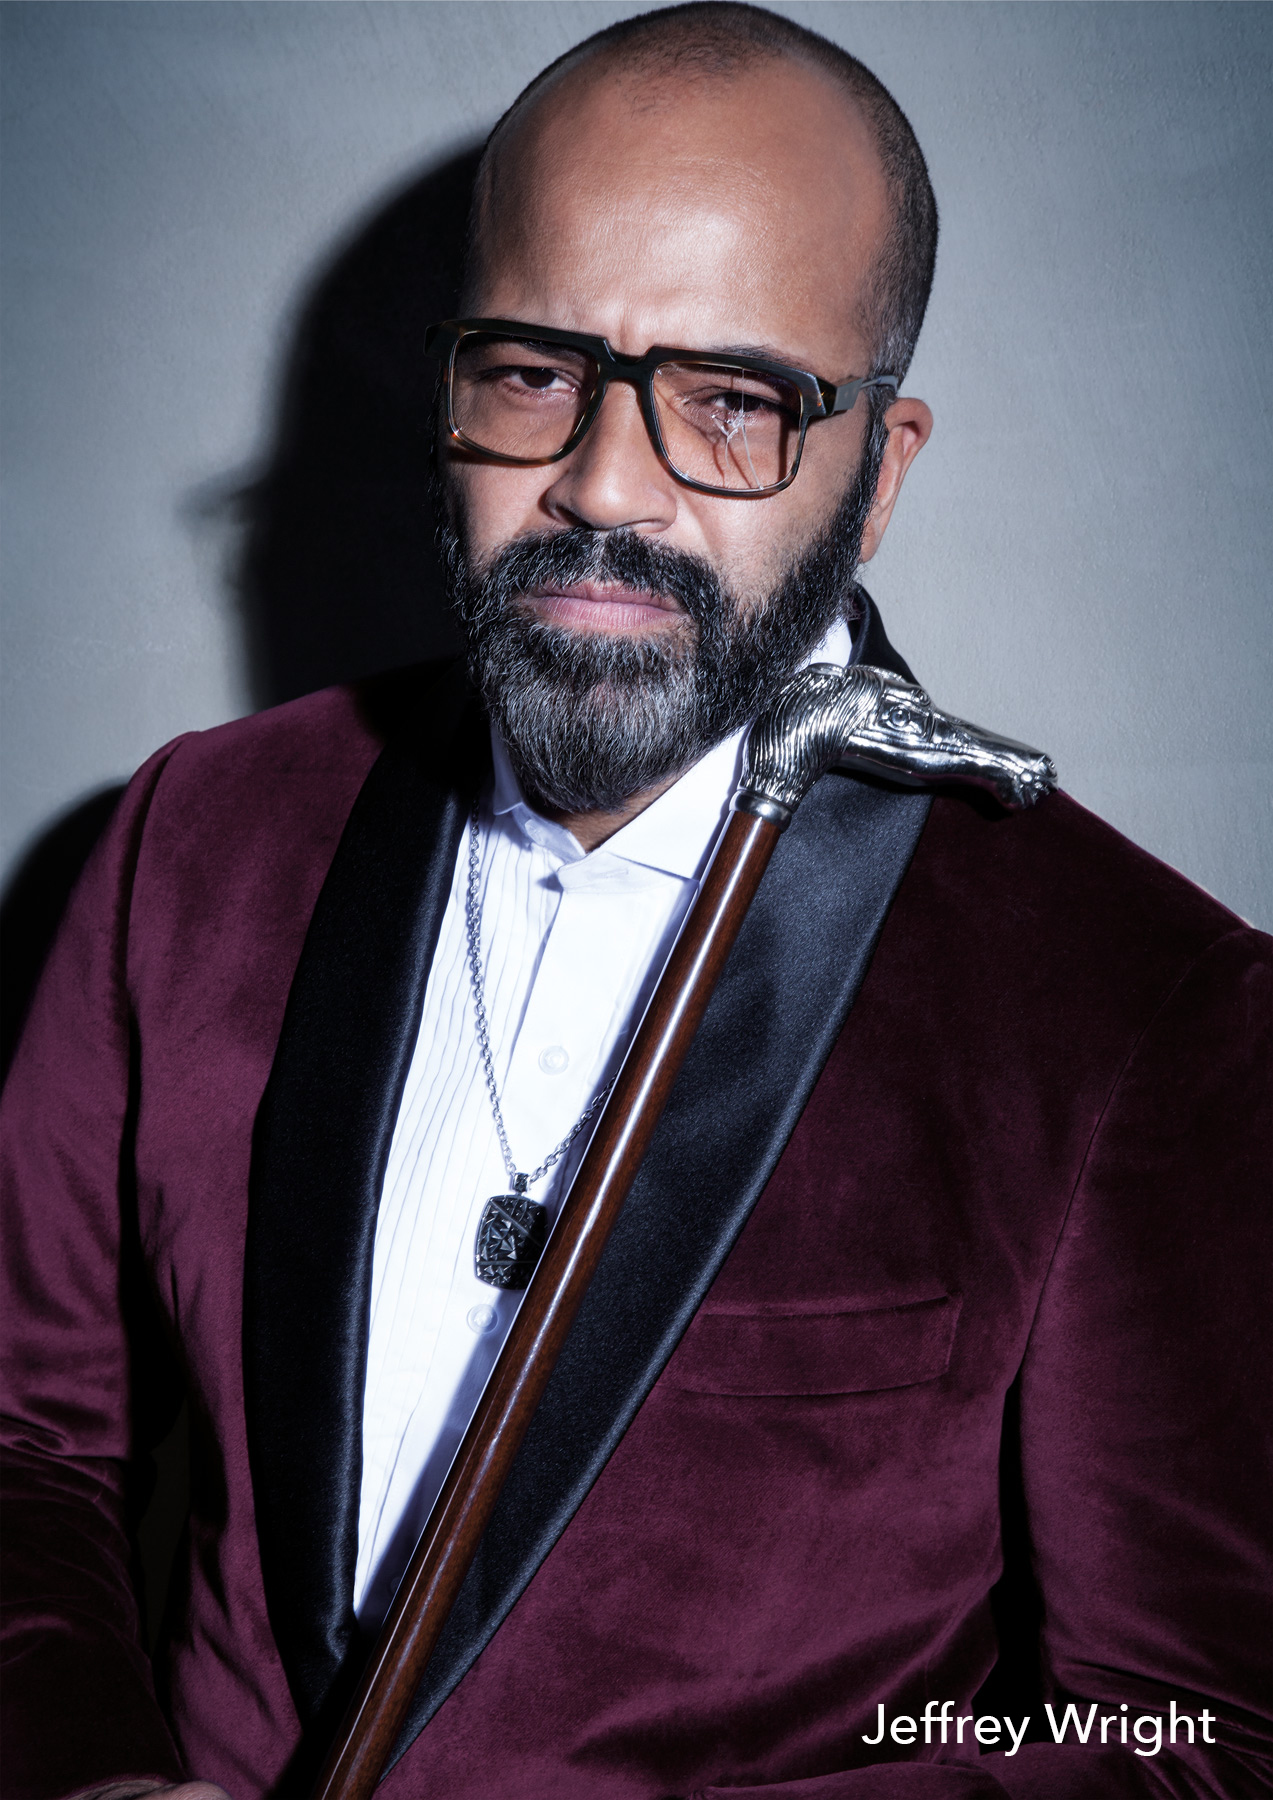 jeffrey_wright_us_8_name.jpg